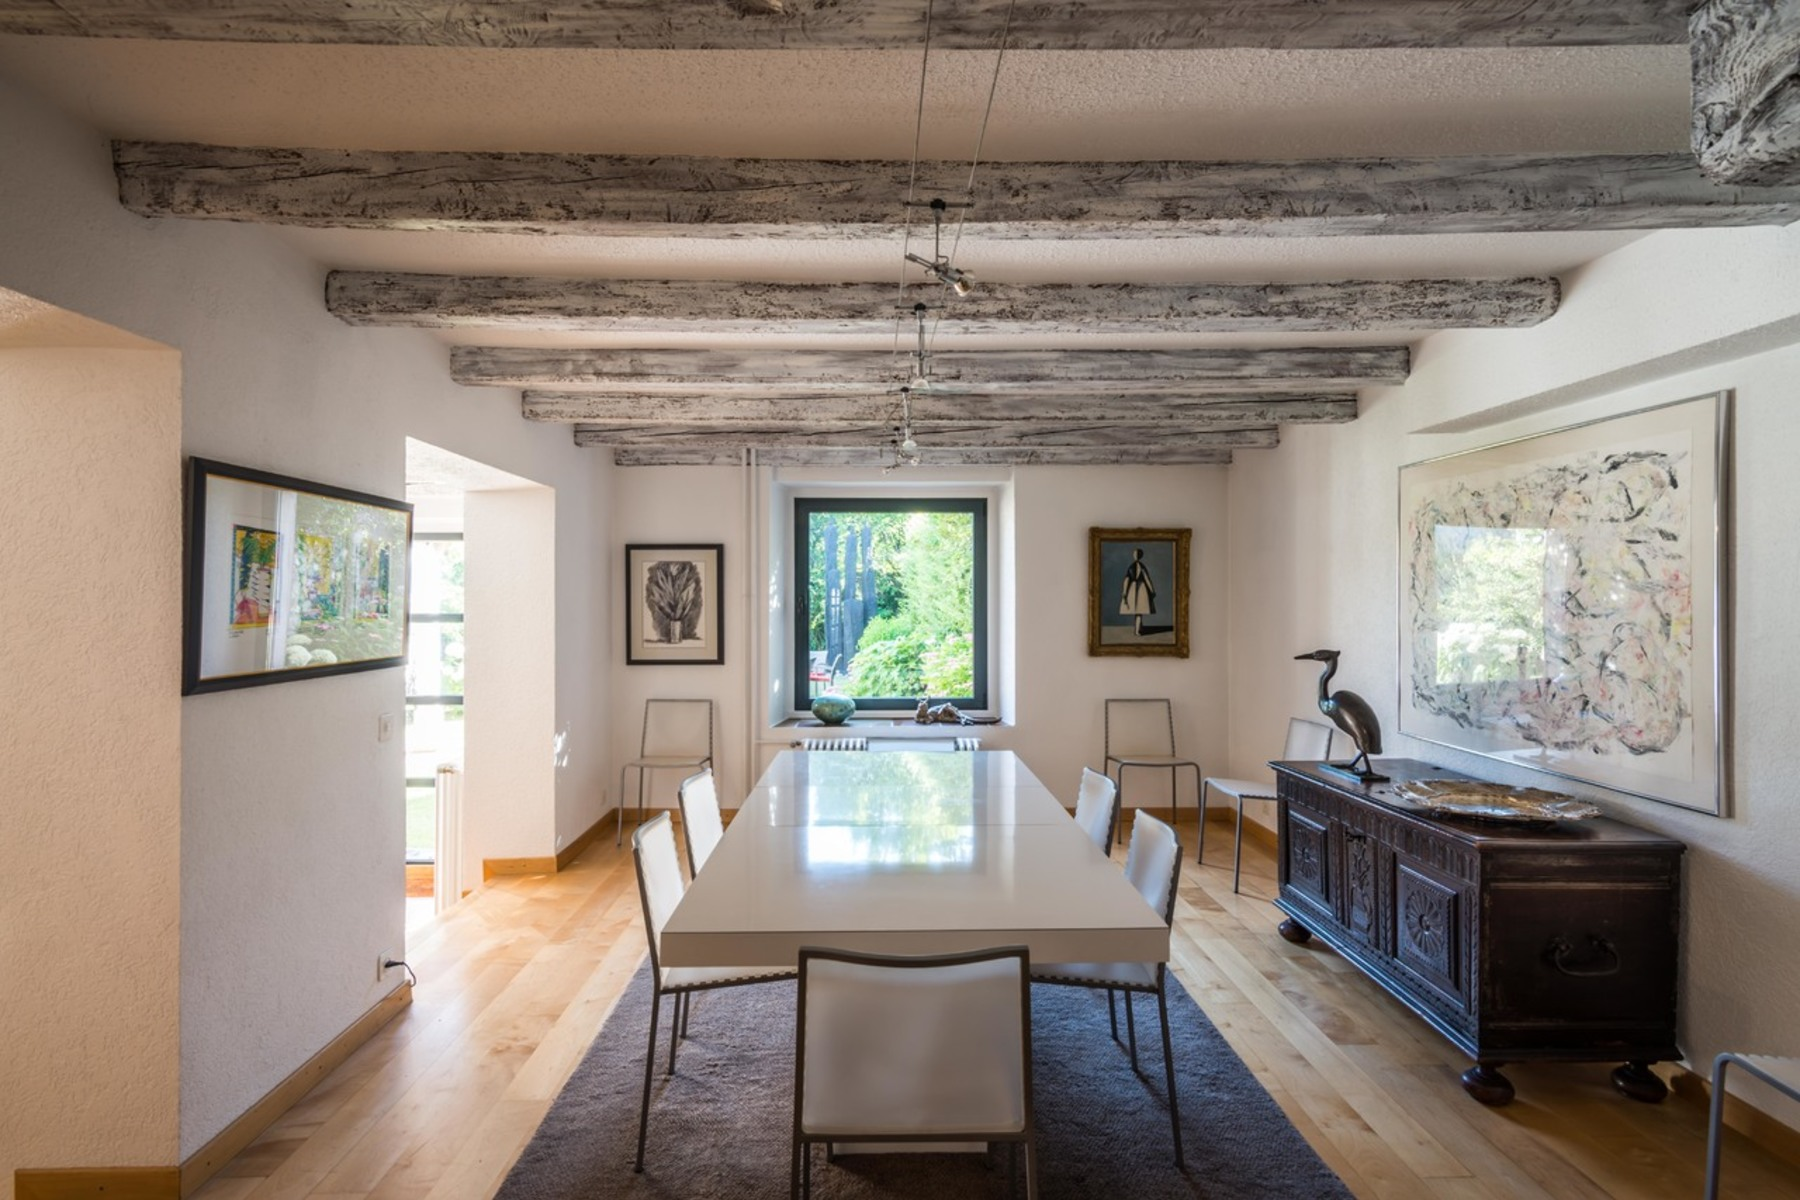 Single Family Home for Sale at Historic barn marrying modern comfort with rustic charm Anières Anieres, Geneva 1247 Switzerland